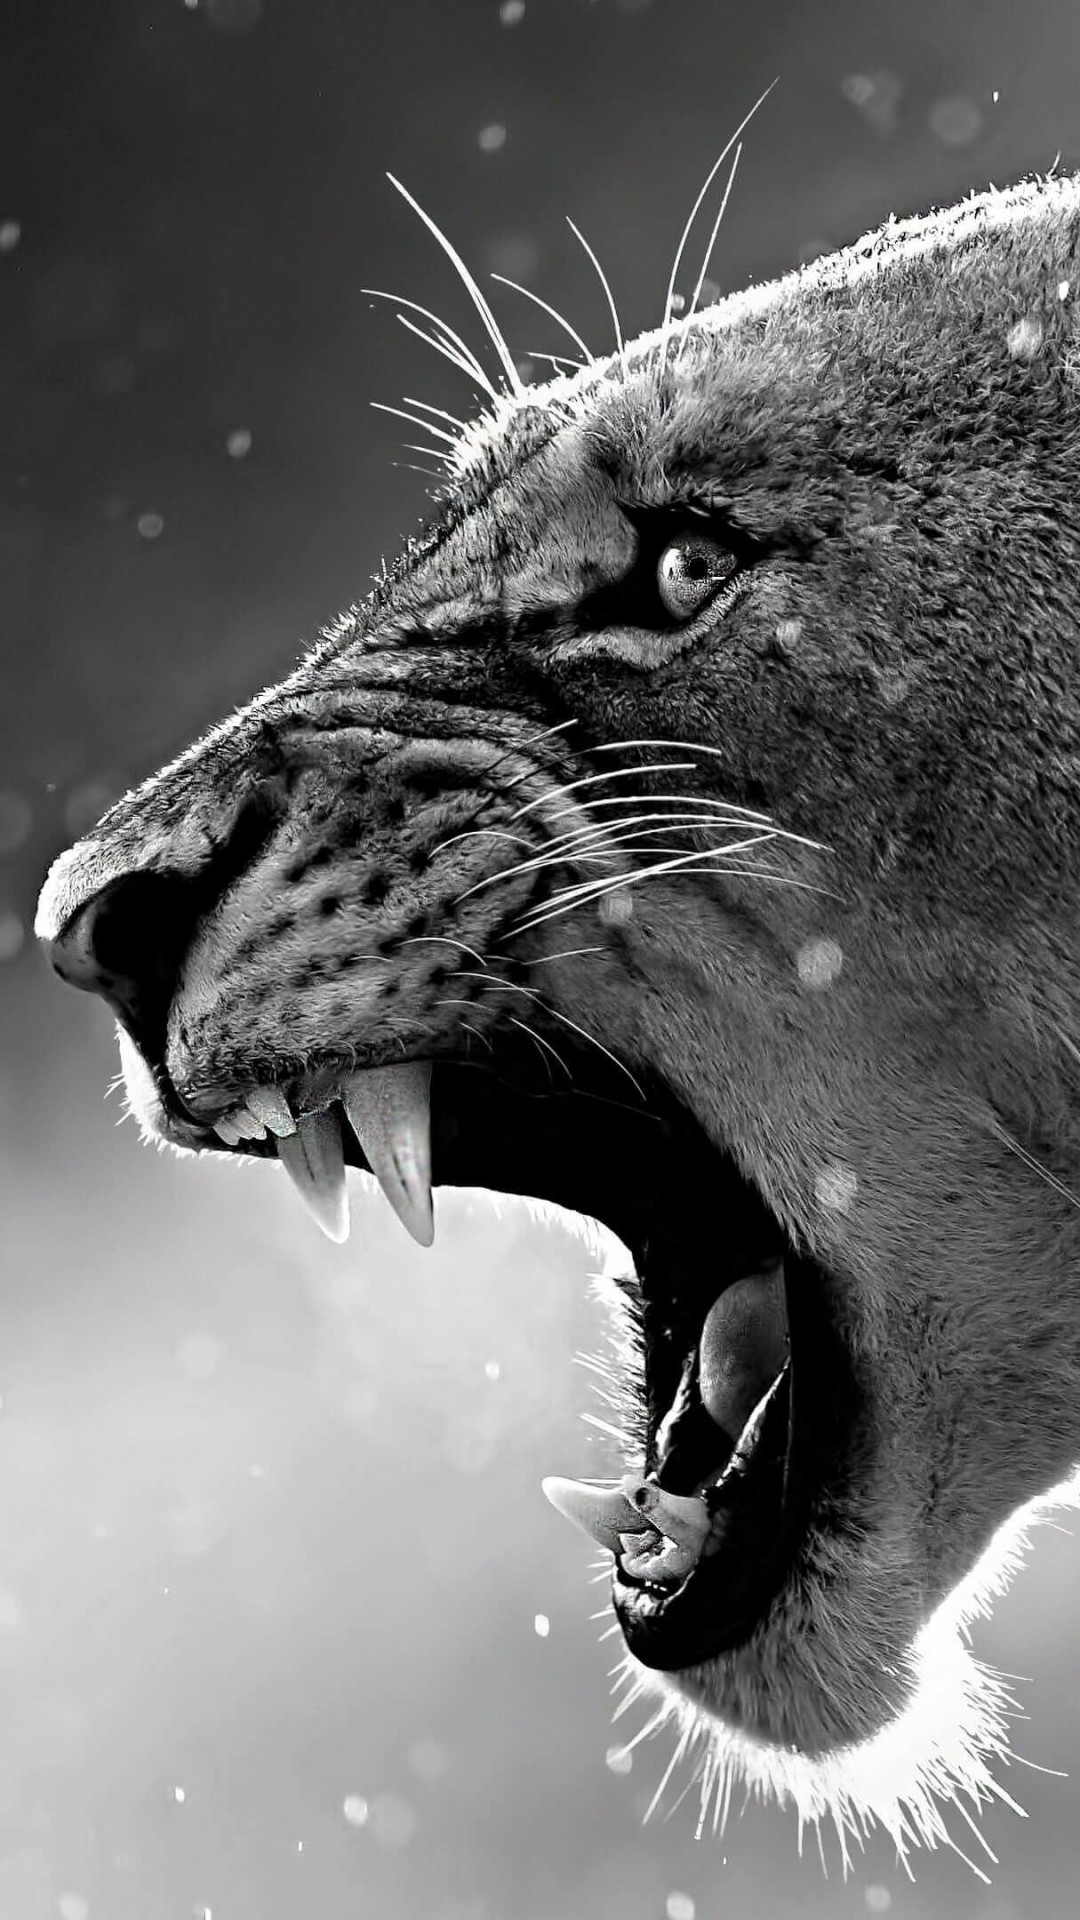 Lioness in Black & White Wallpaper for SAMSUNG Galaxy Note 3